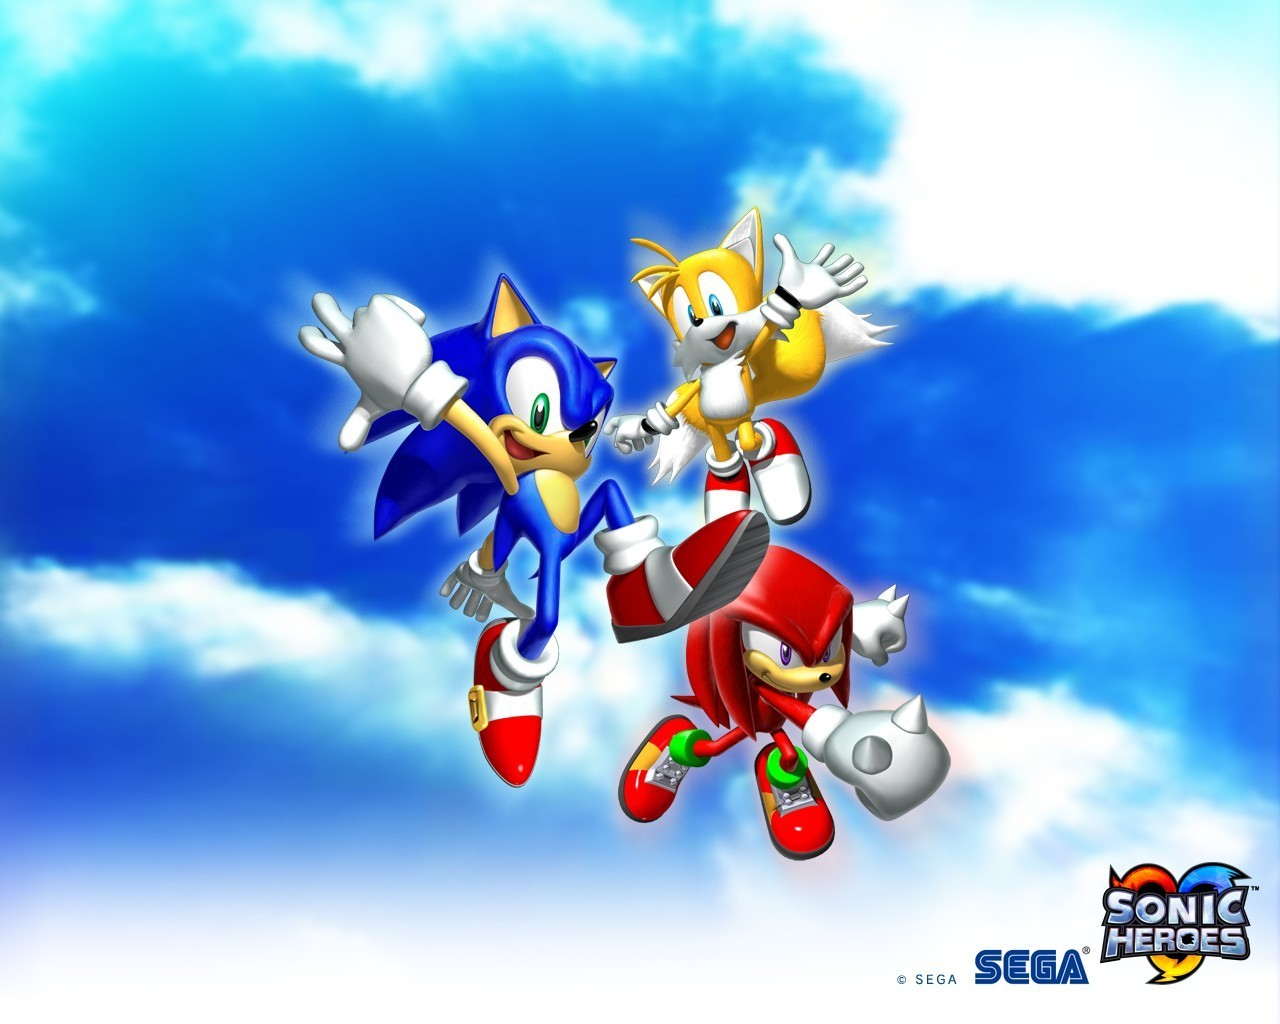 Sonic the Hedgehog Knuckles HD Wallpaper